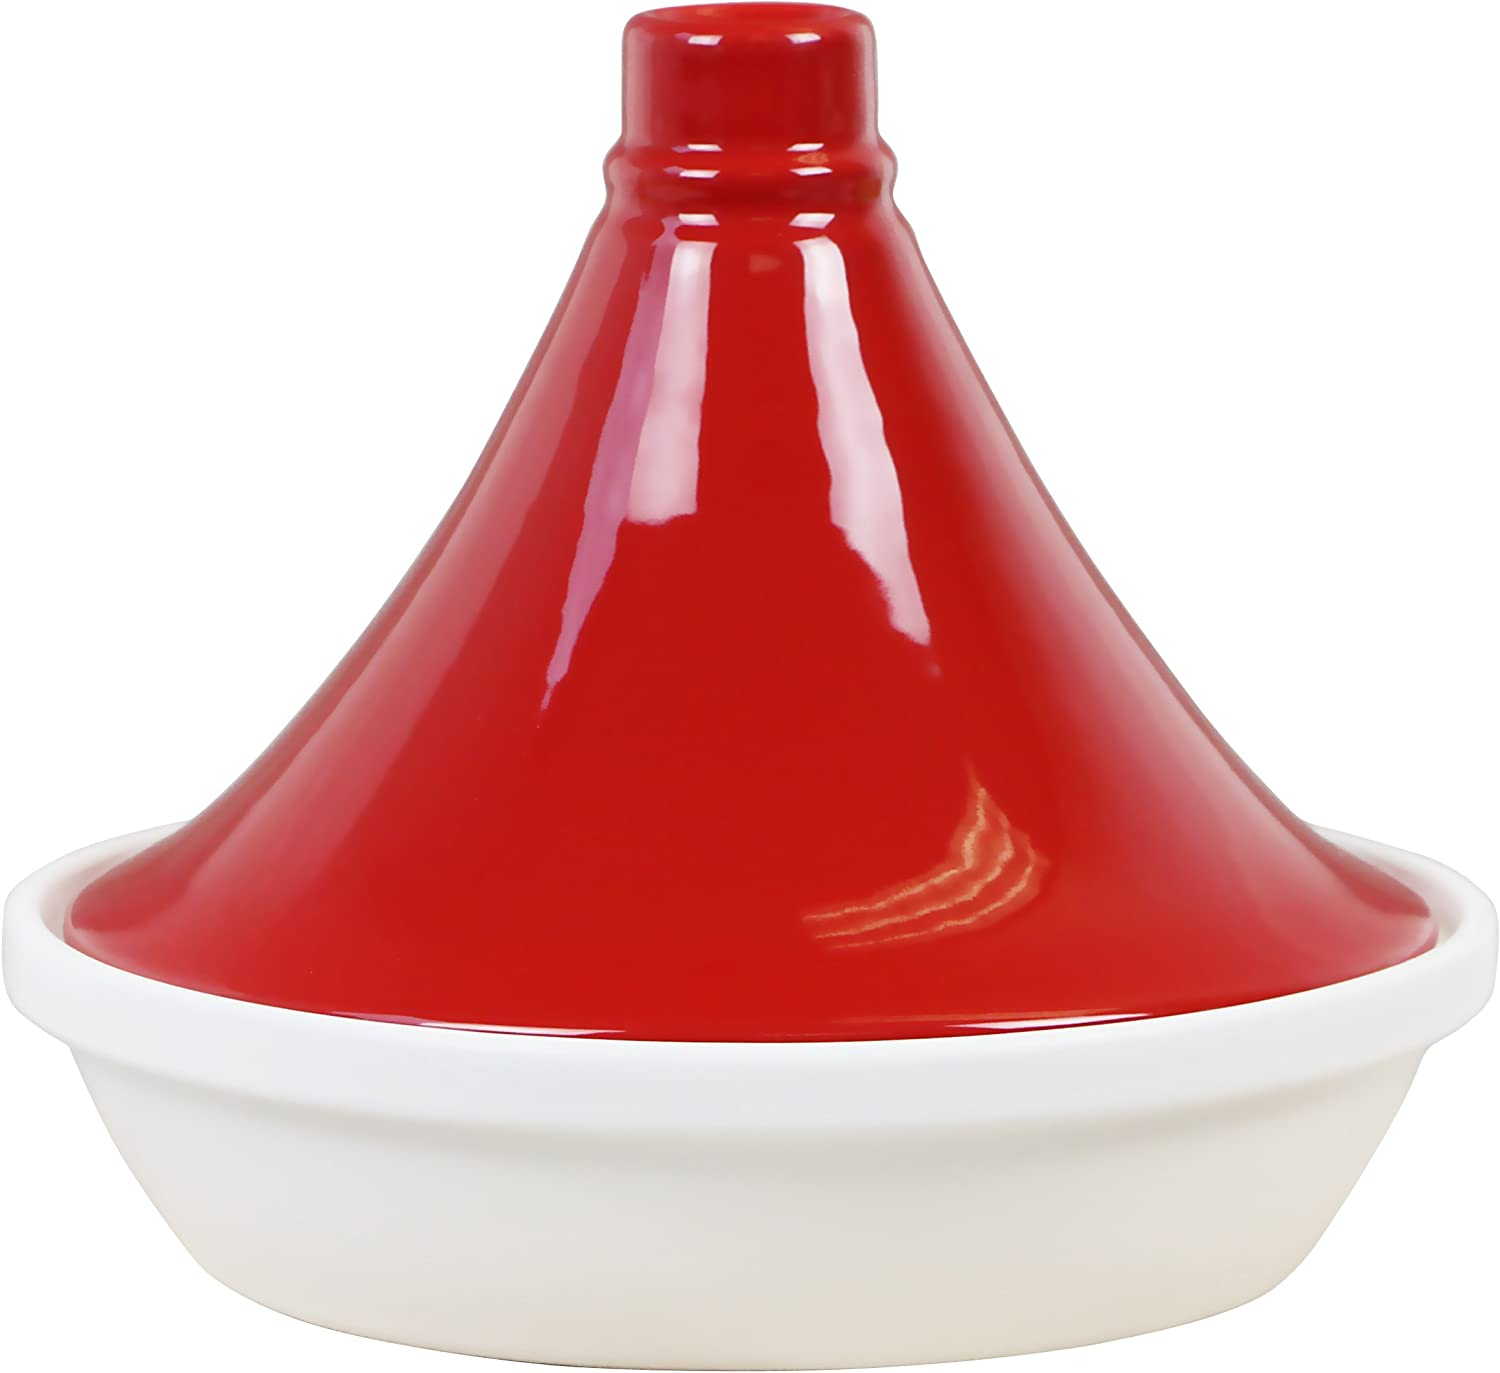 Calypso Basics by Reston Lloyd Flame Tagine Max 71% OFF Proof Special sale item Porcelain 2.5